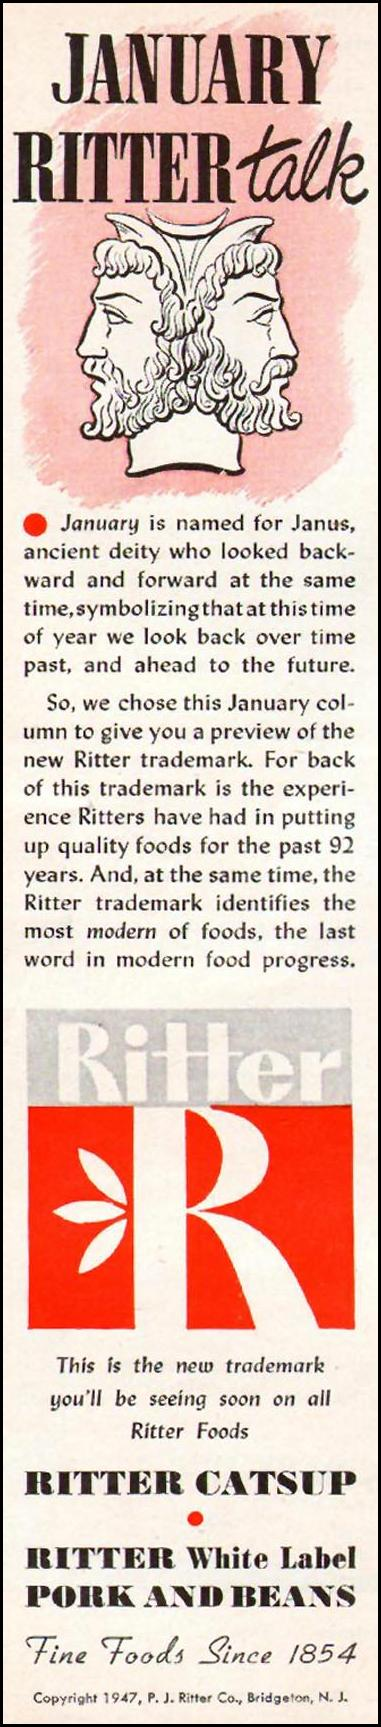 RITTER CATSUP WOMAN'S DAY 01/01/1947 p. 14